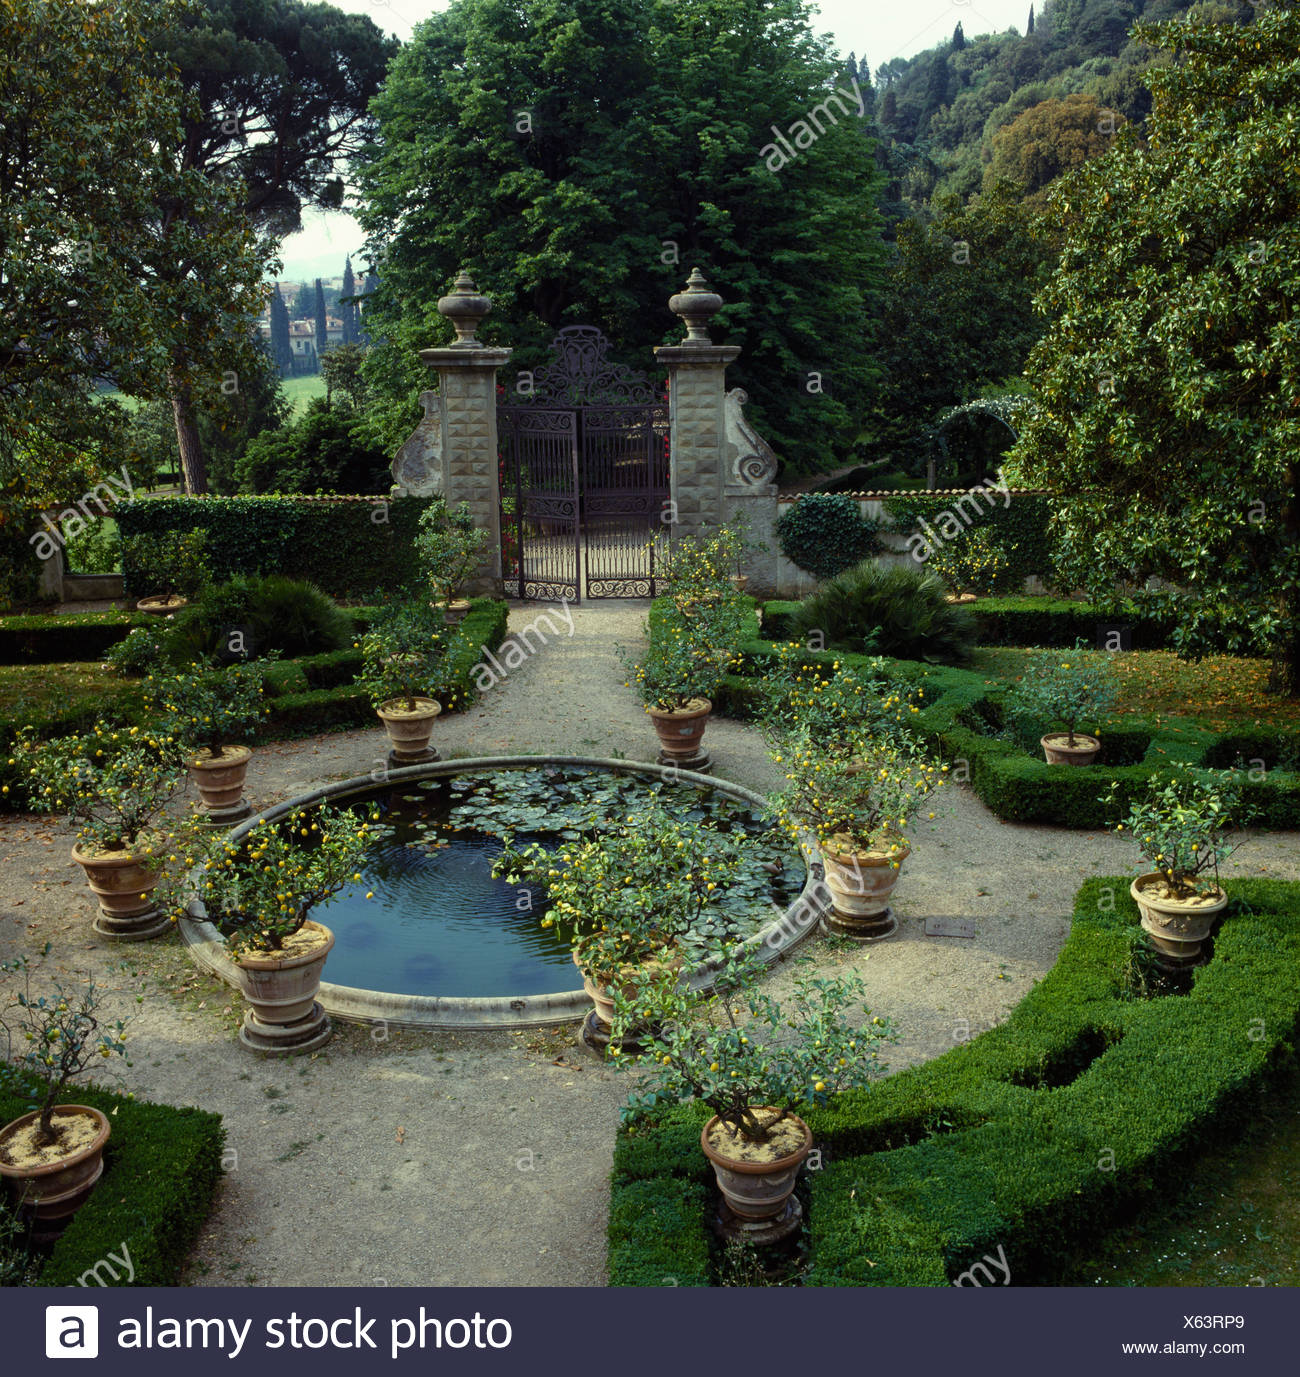 Pool On Formal Terrace Bordered By Clipped Hedges And Shrubs In Pots Italian Country Garden